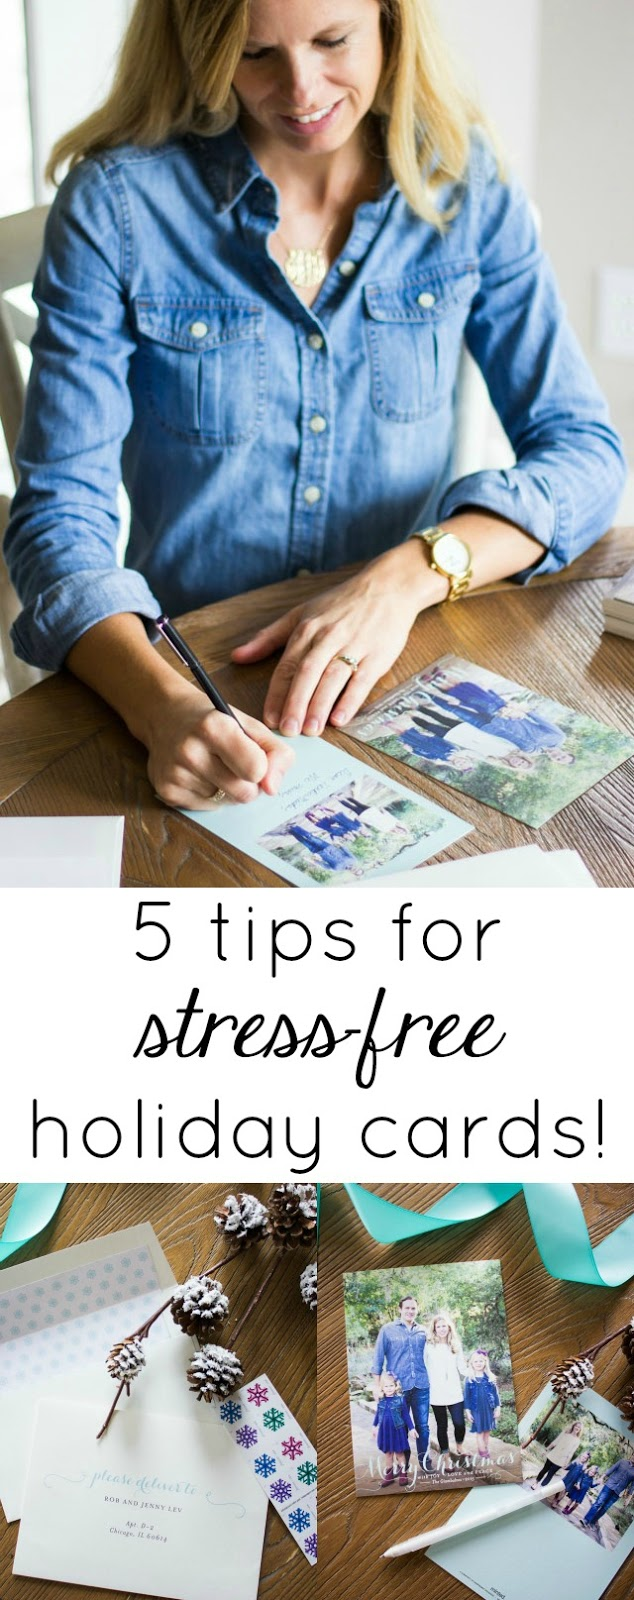 5 tips for stress-free holiday cards!